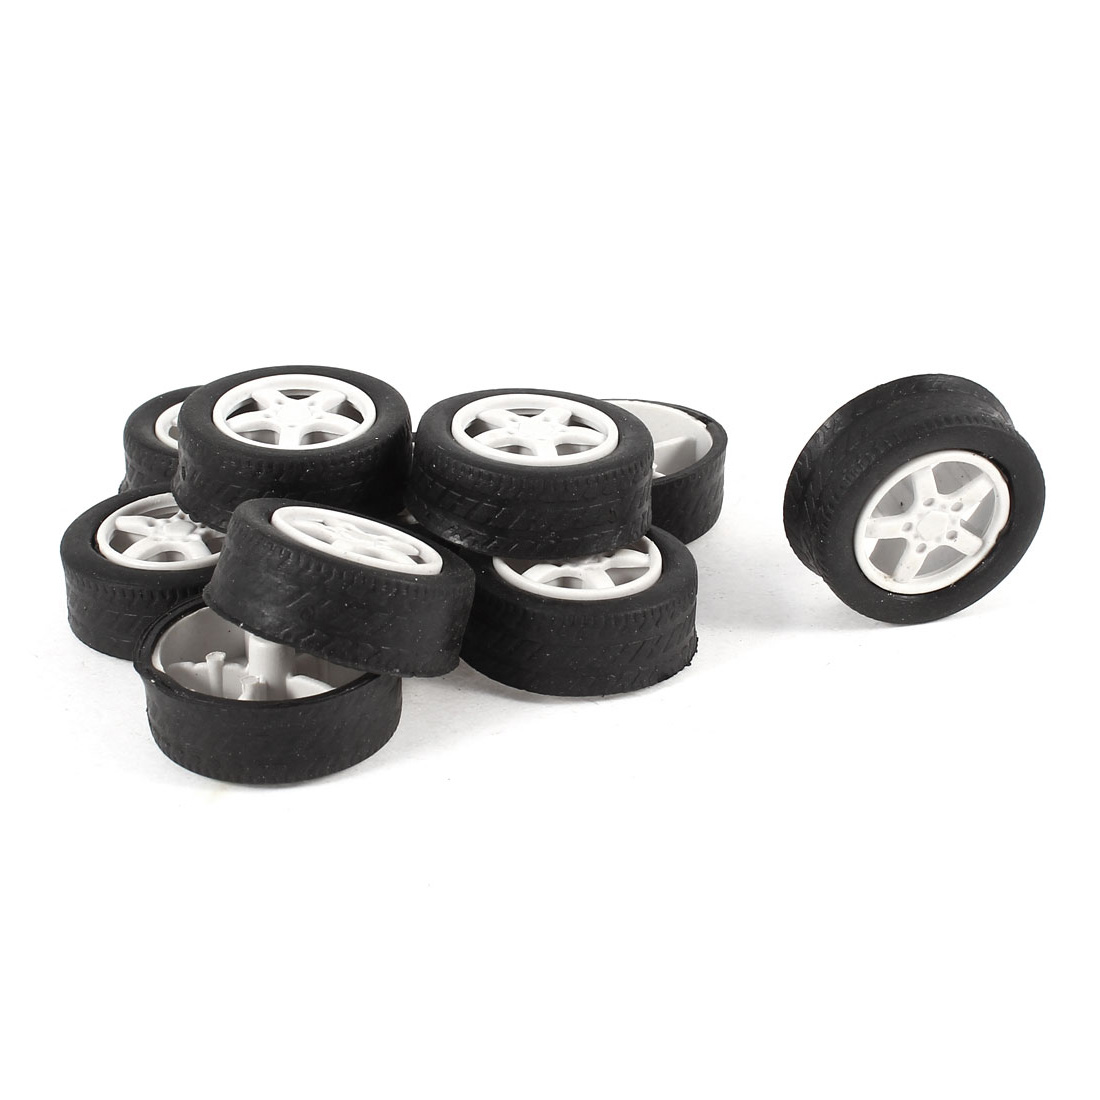 10 Pcs 31mm Dia Rubber Roll Plastic Spoke Car Auto Model Toys Wheels